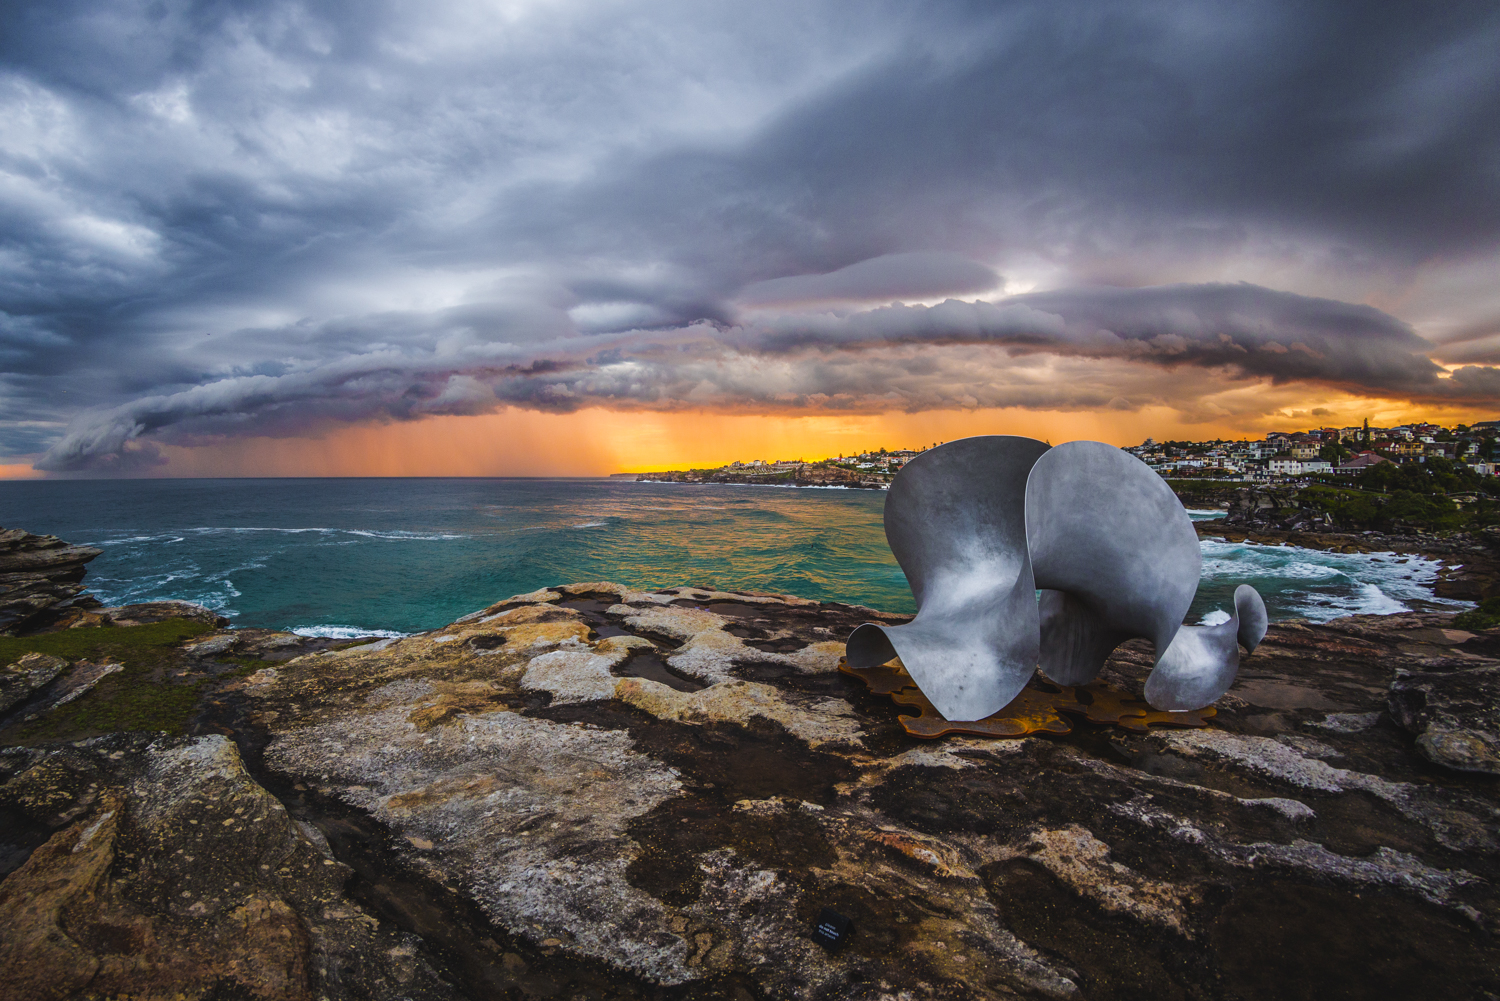 Benjamin Storch, undulation, Sculpture by the Sea, Bondi 2015. Photo Jessica Wyld